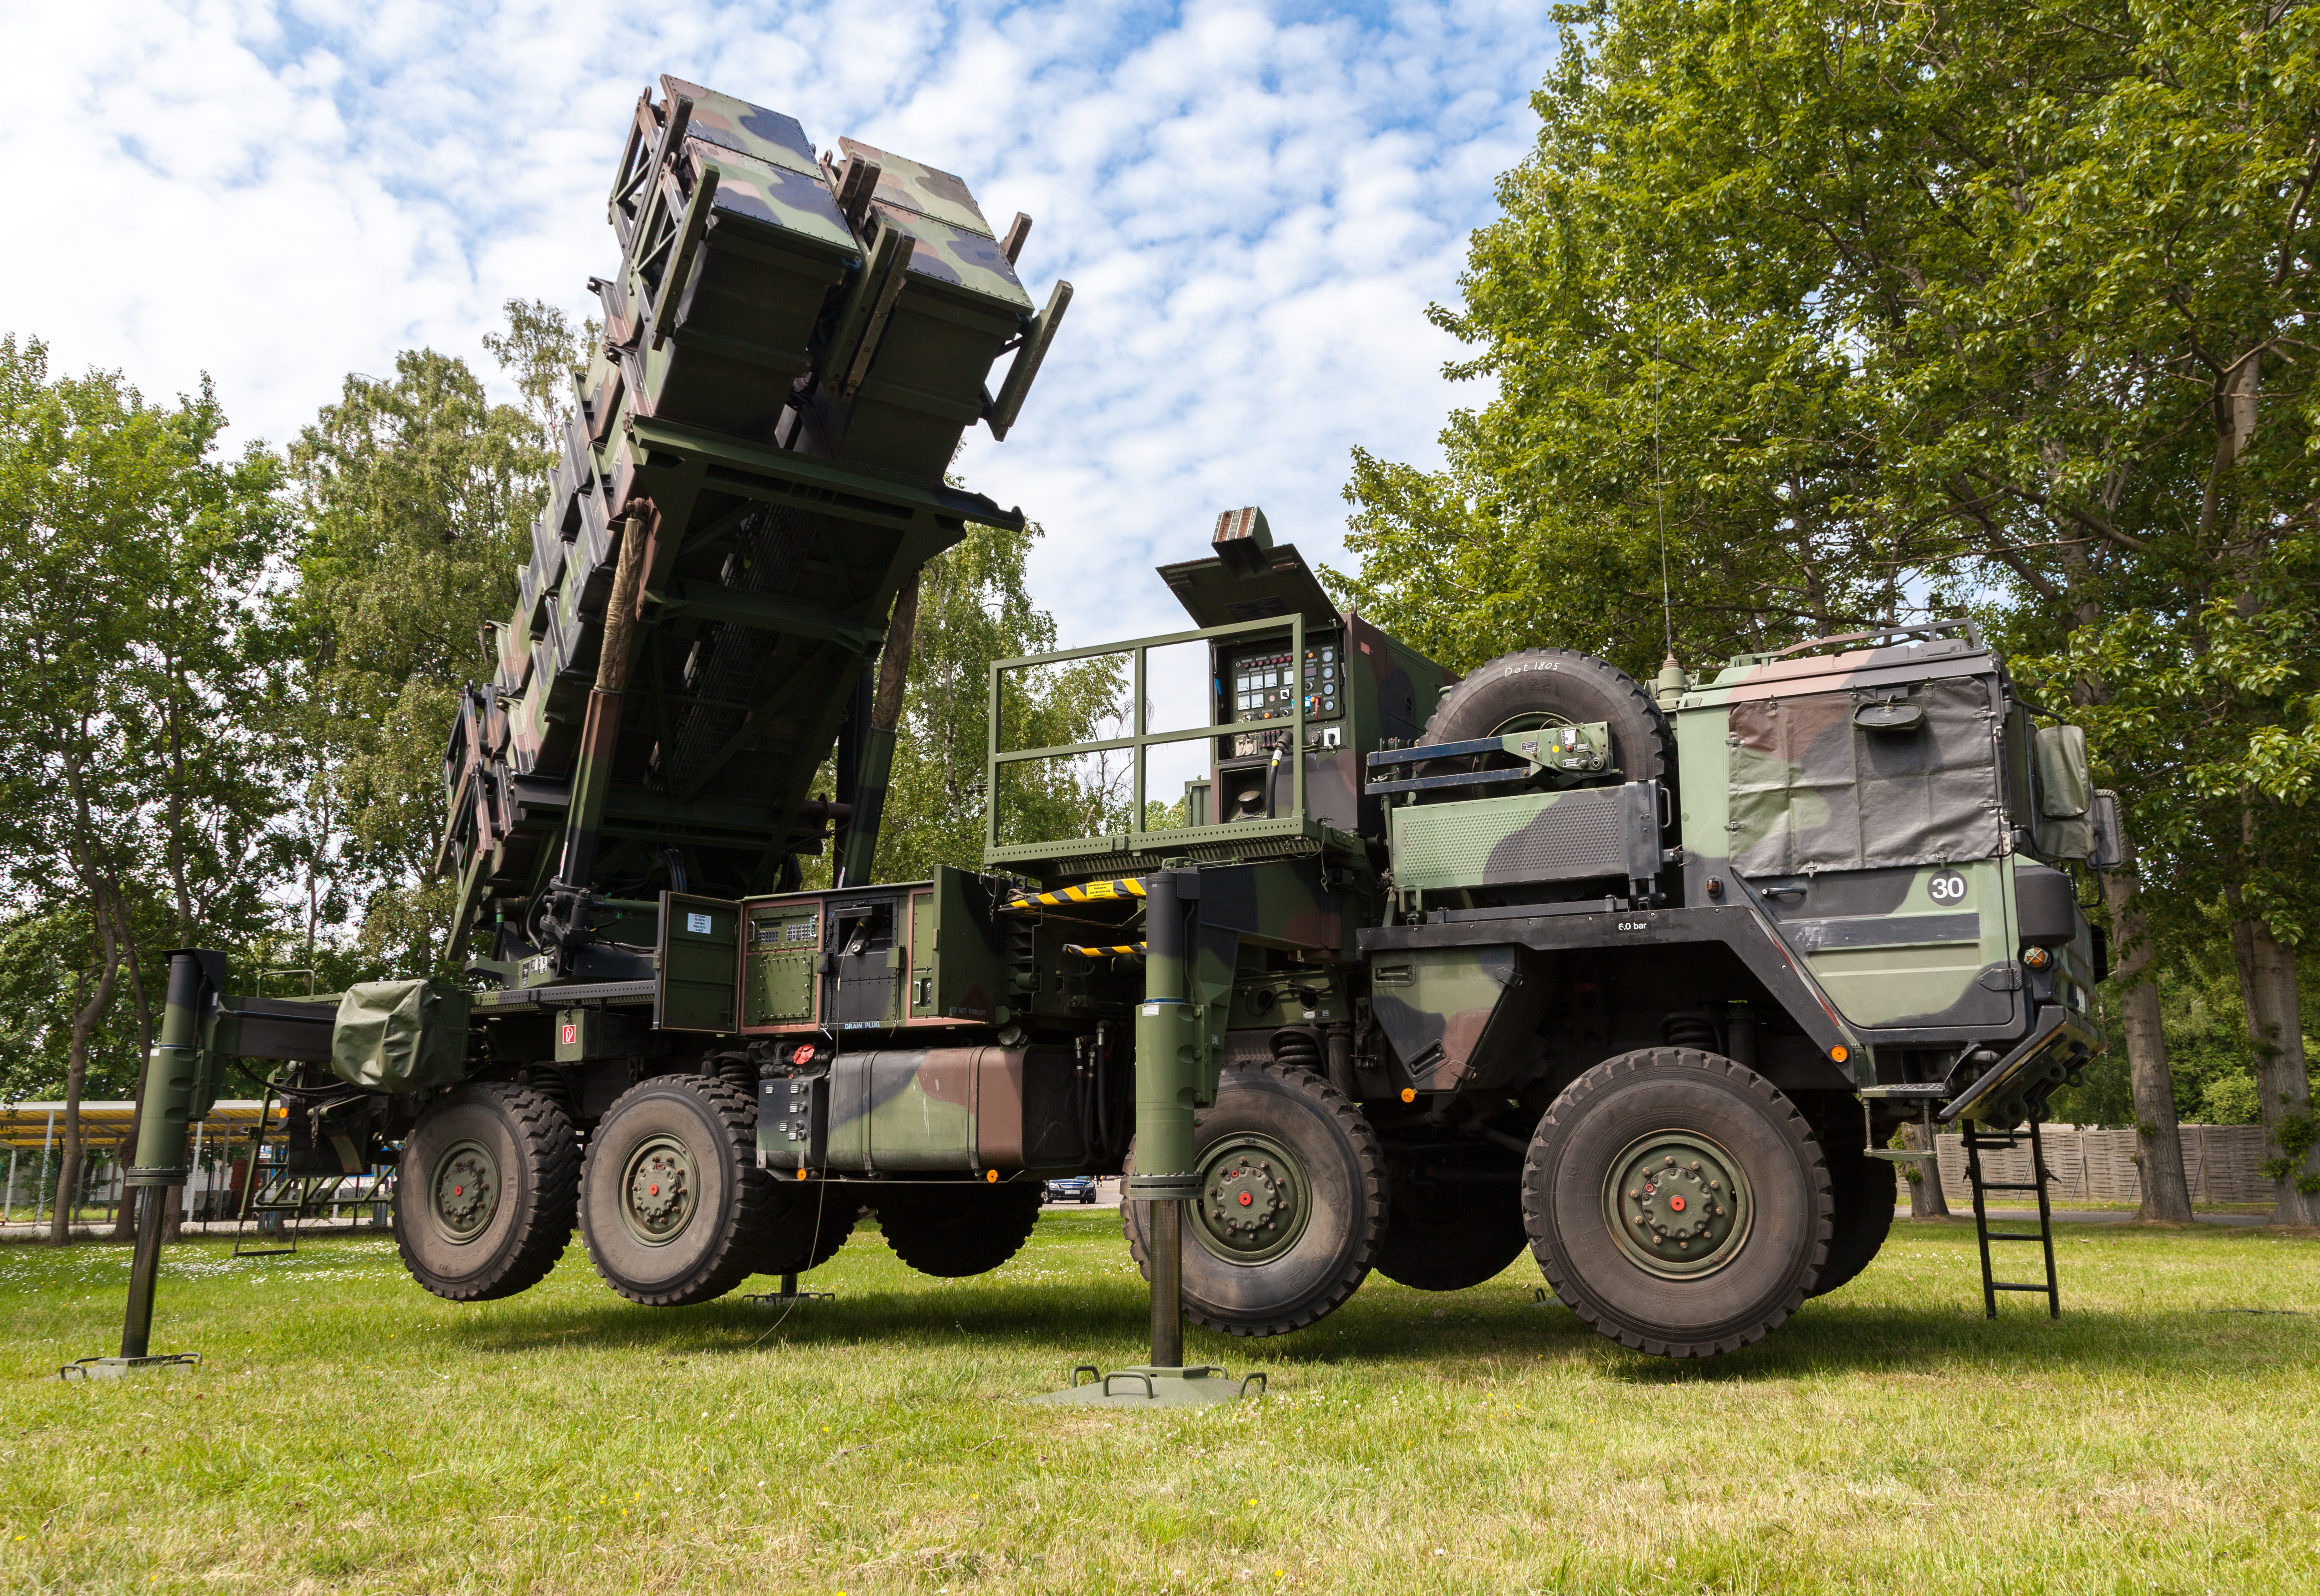 Patriot missile launcher. Photo courtesy of DollarPhotoClub.com